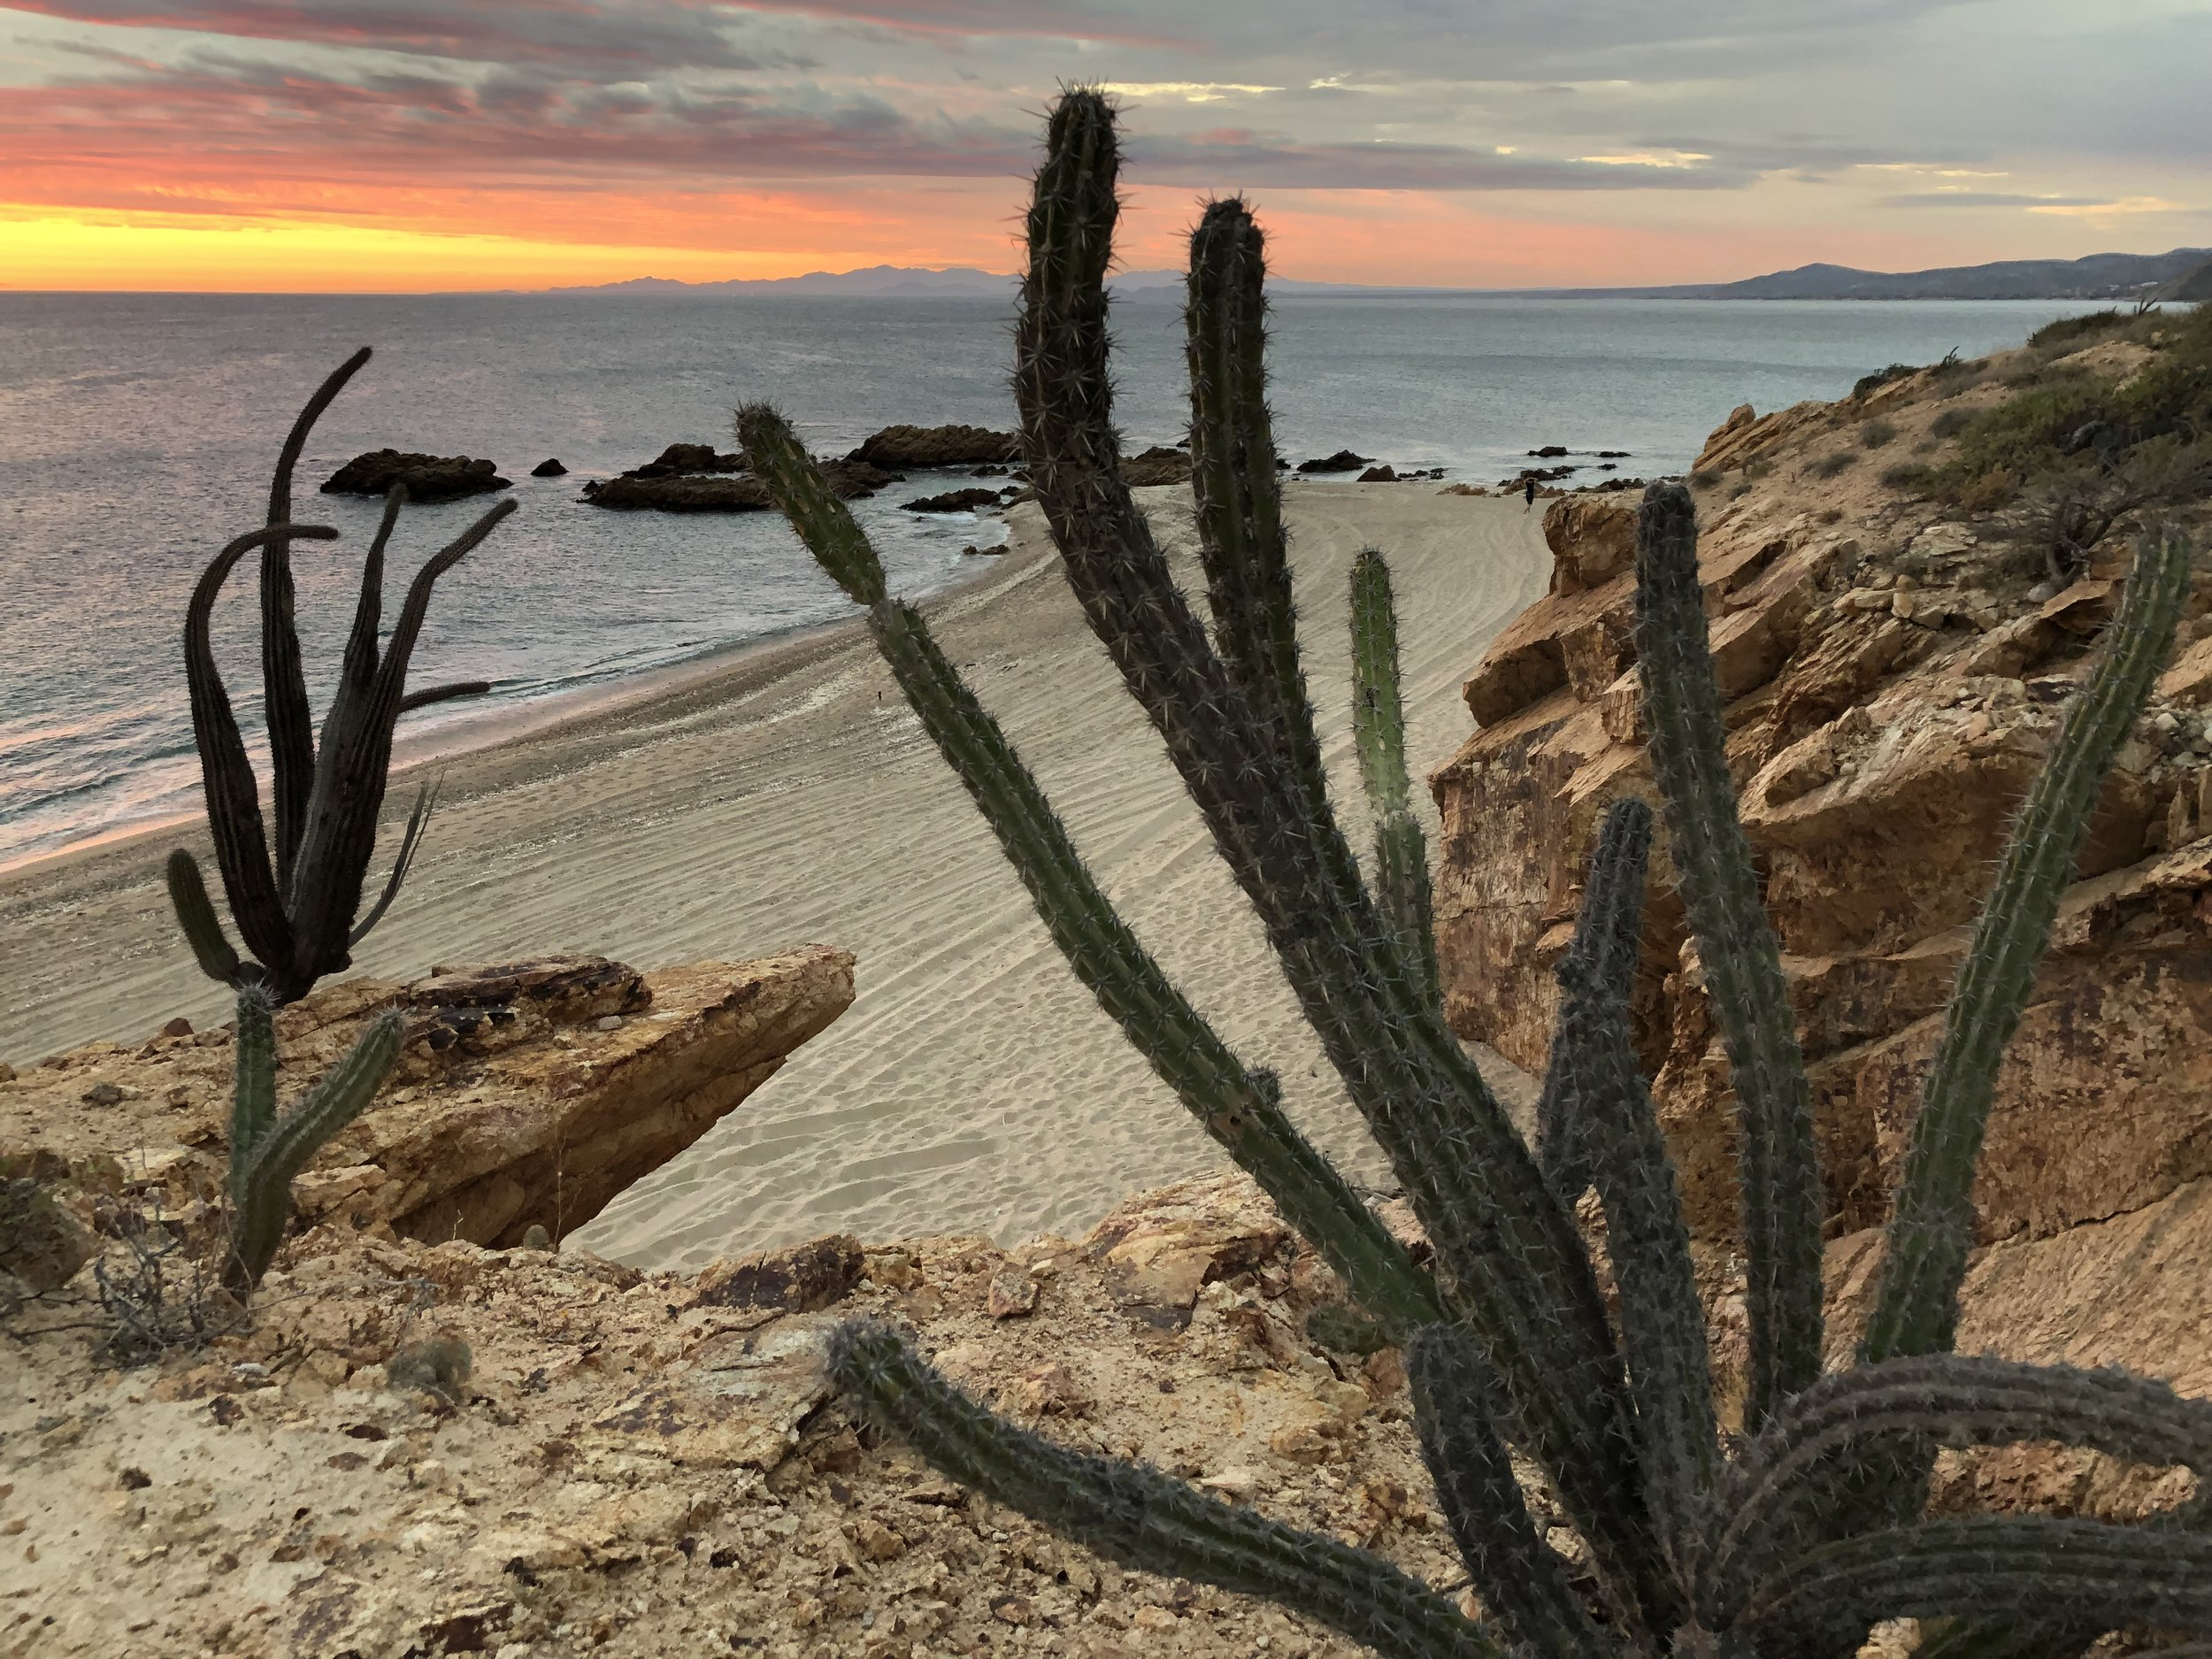 201901_Cactus_Sea_of_Cortez.JPG